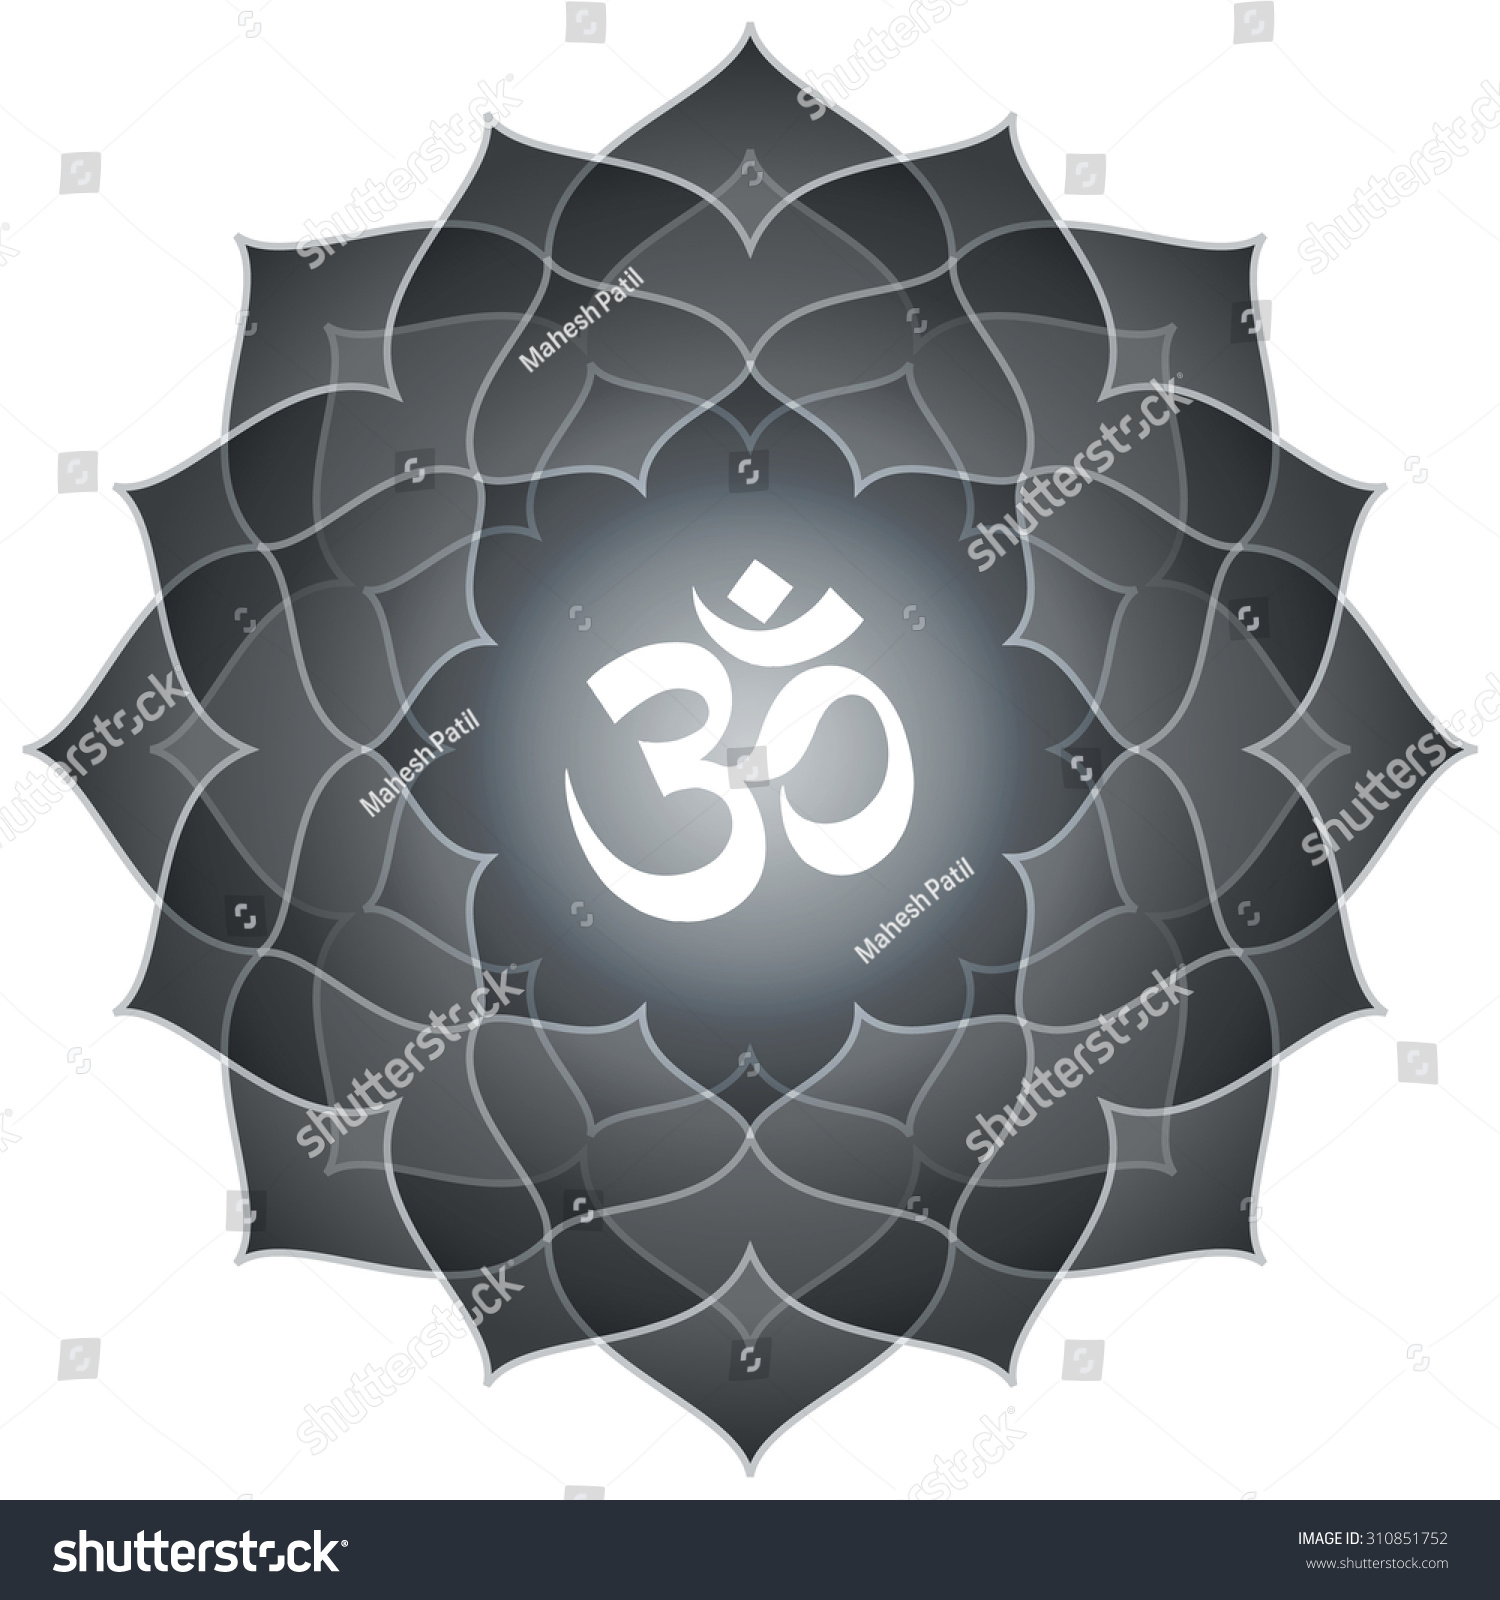 Lotus Om Design Text Spiritual Hindu Stock Vector 310851752